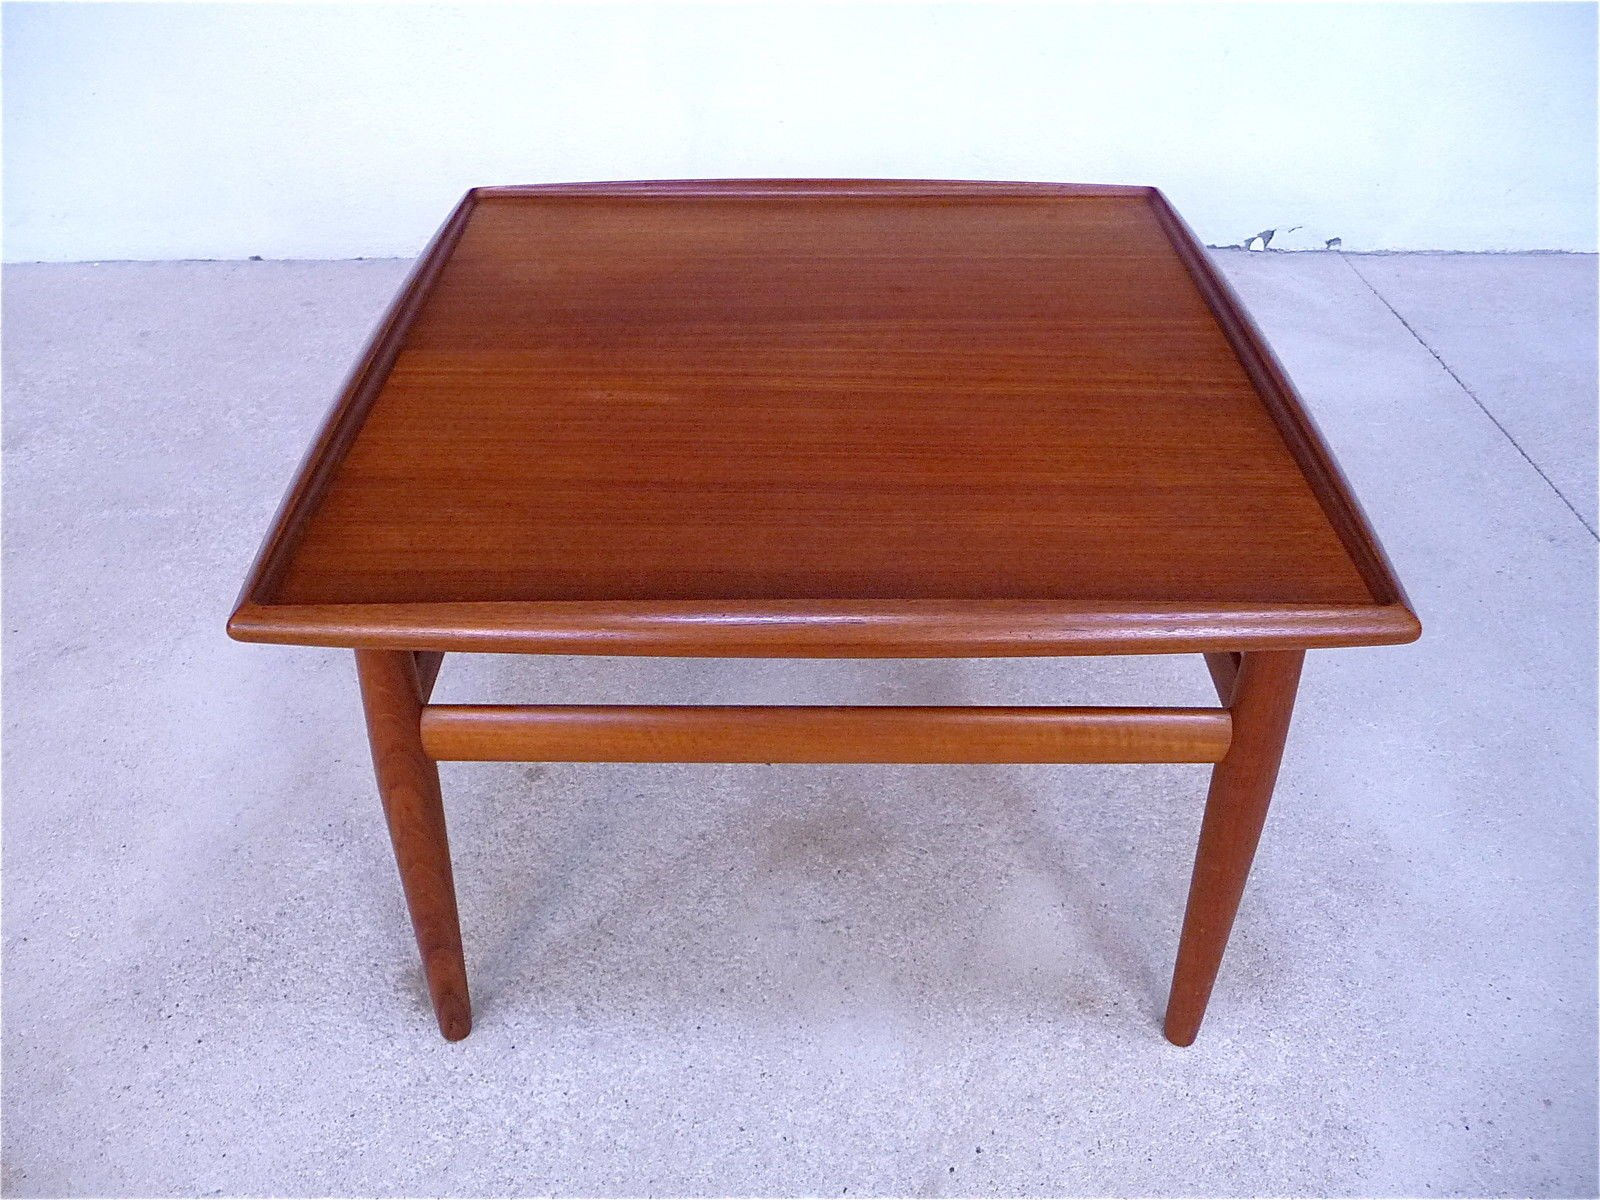 Mid Century Danish Teak Coffee Table By Grete Jalk For Glostrup 1960s For Sale At Pamono